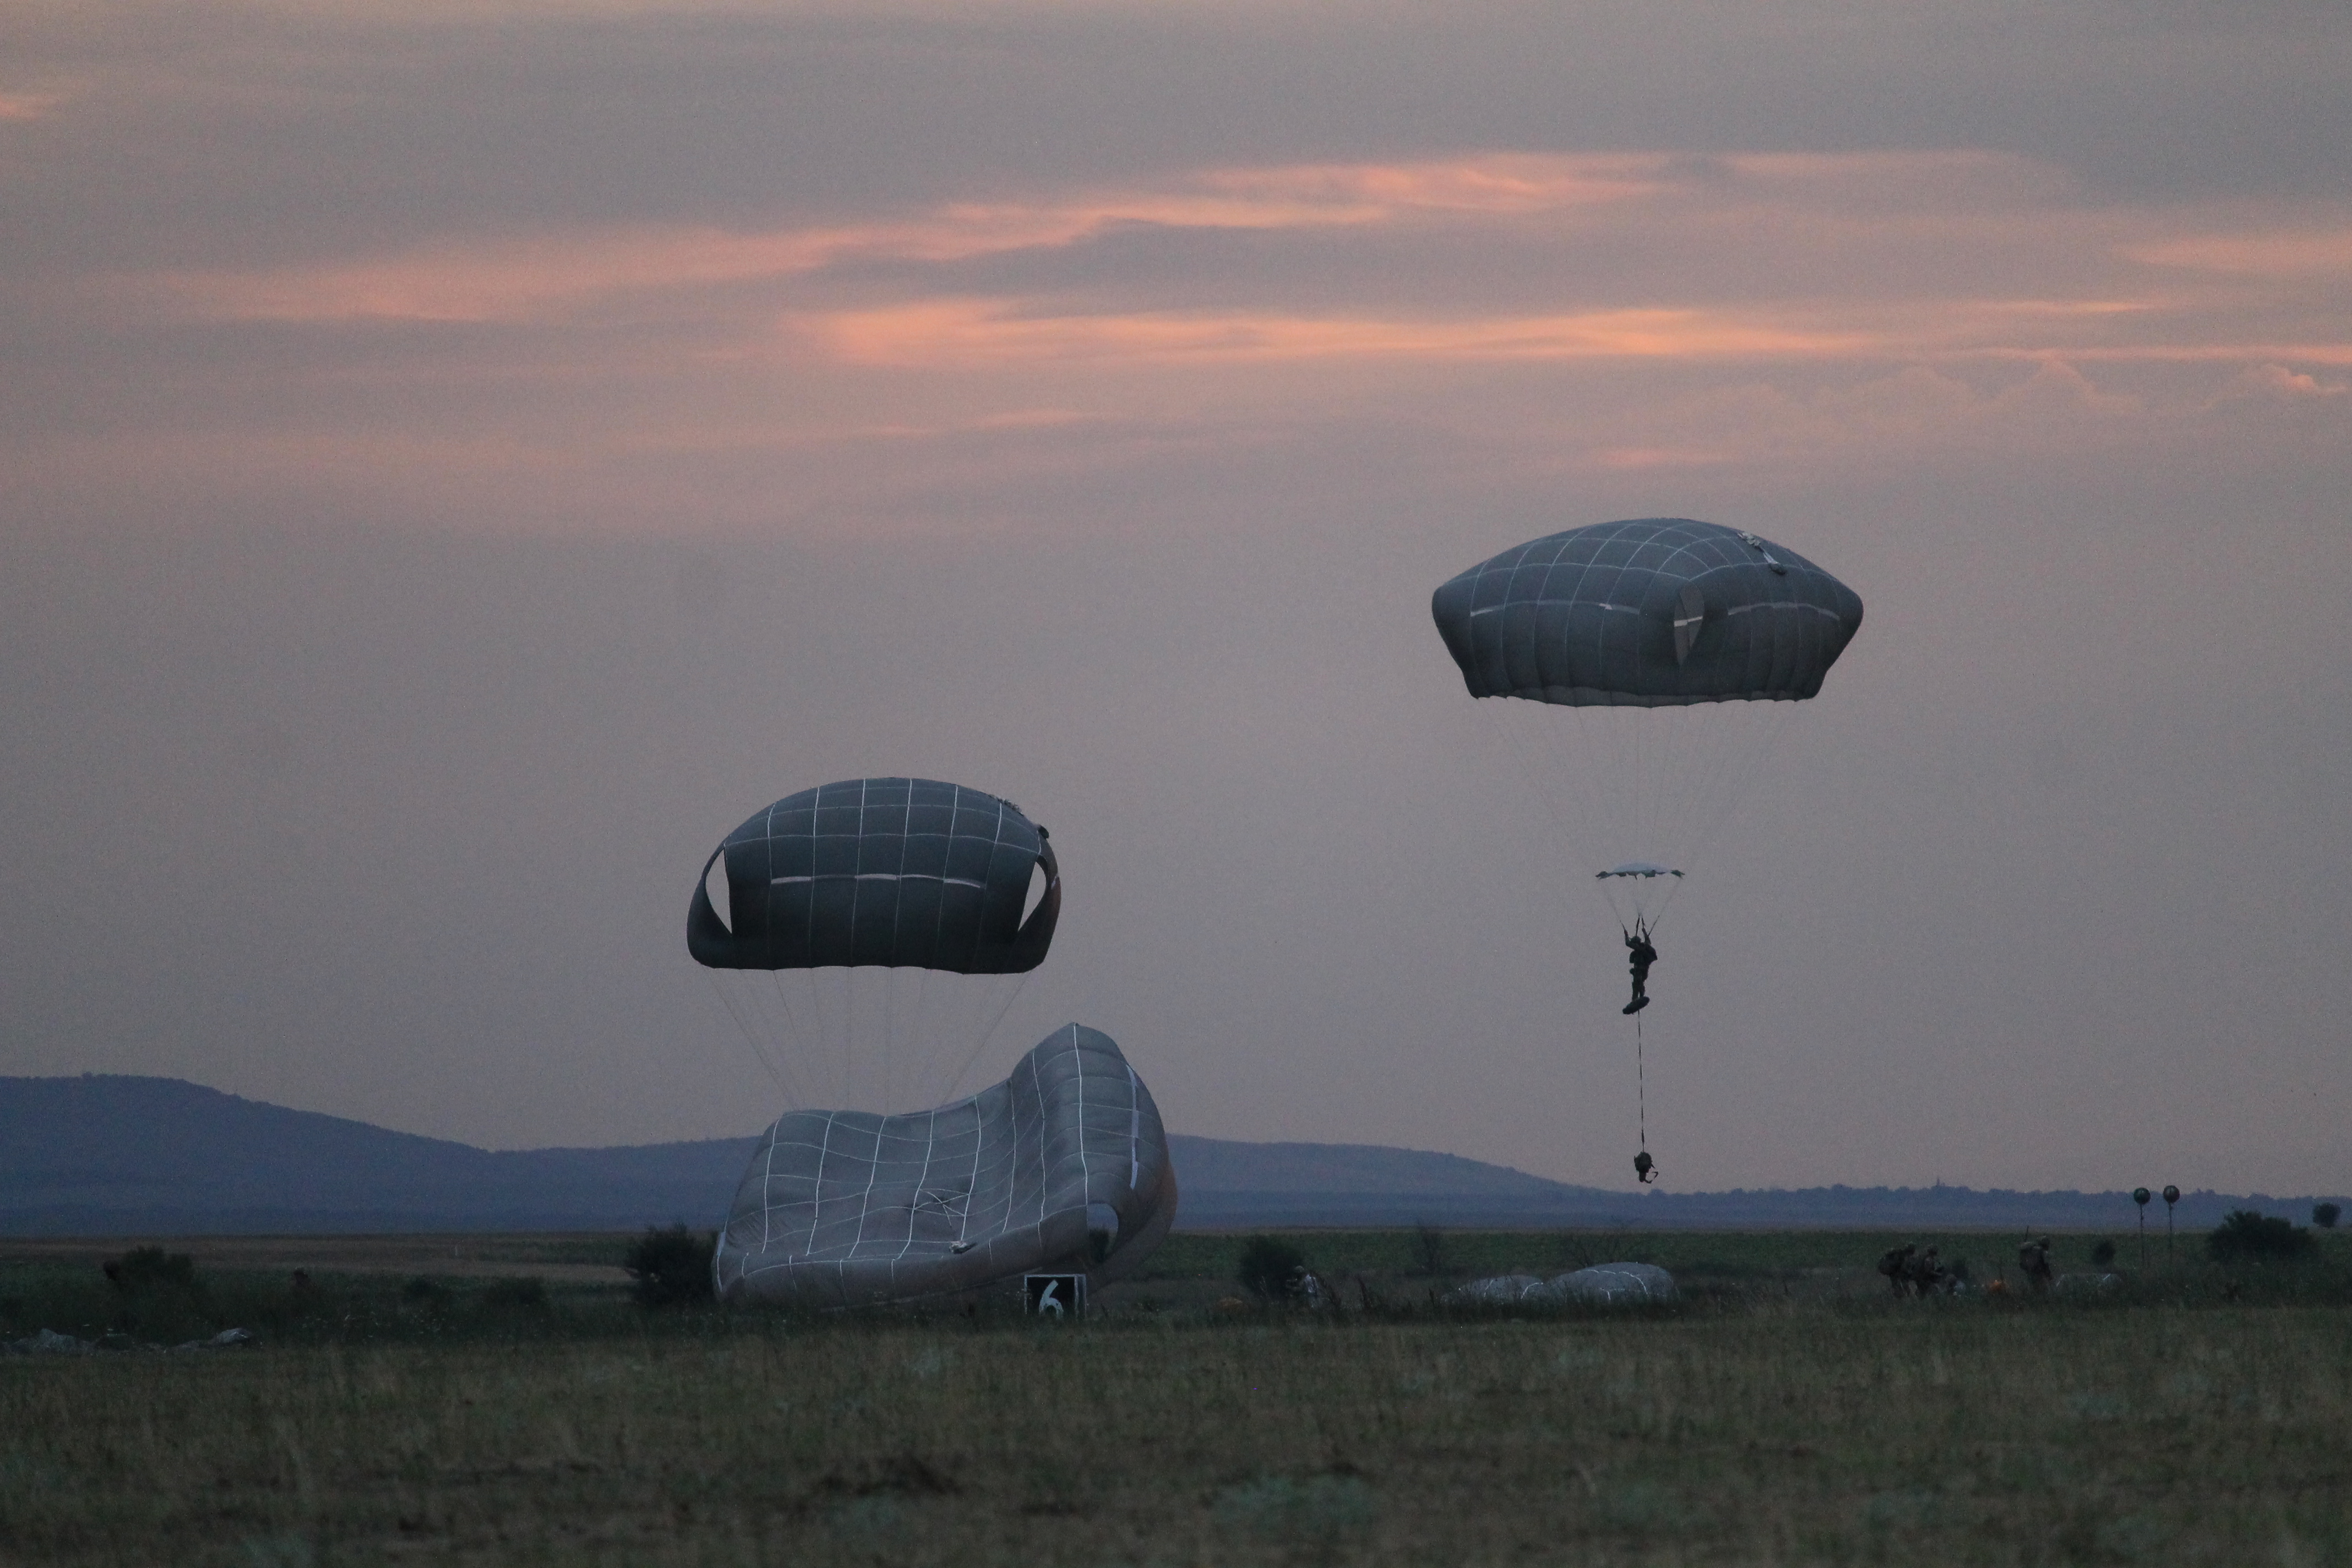 Paratroopers from the 173rd continue to land in the drop zone as night falls. (Jen Judson/Staff)